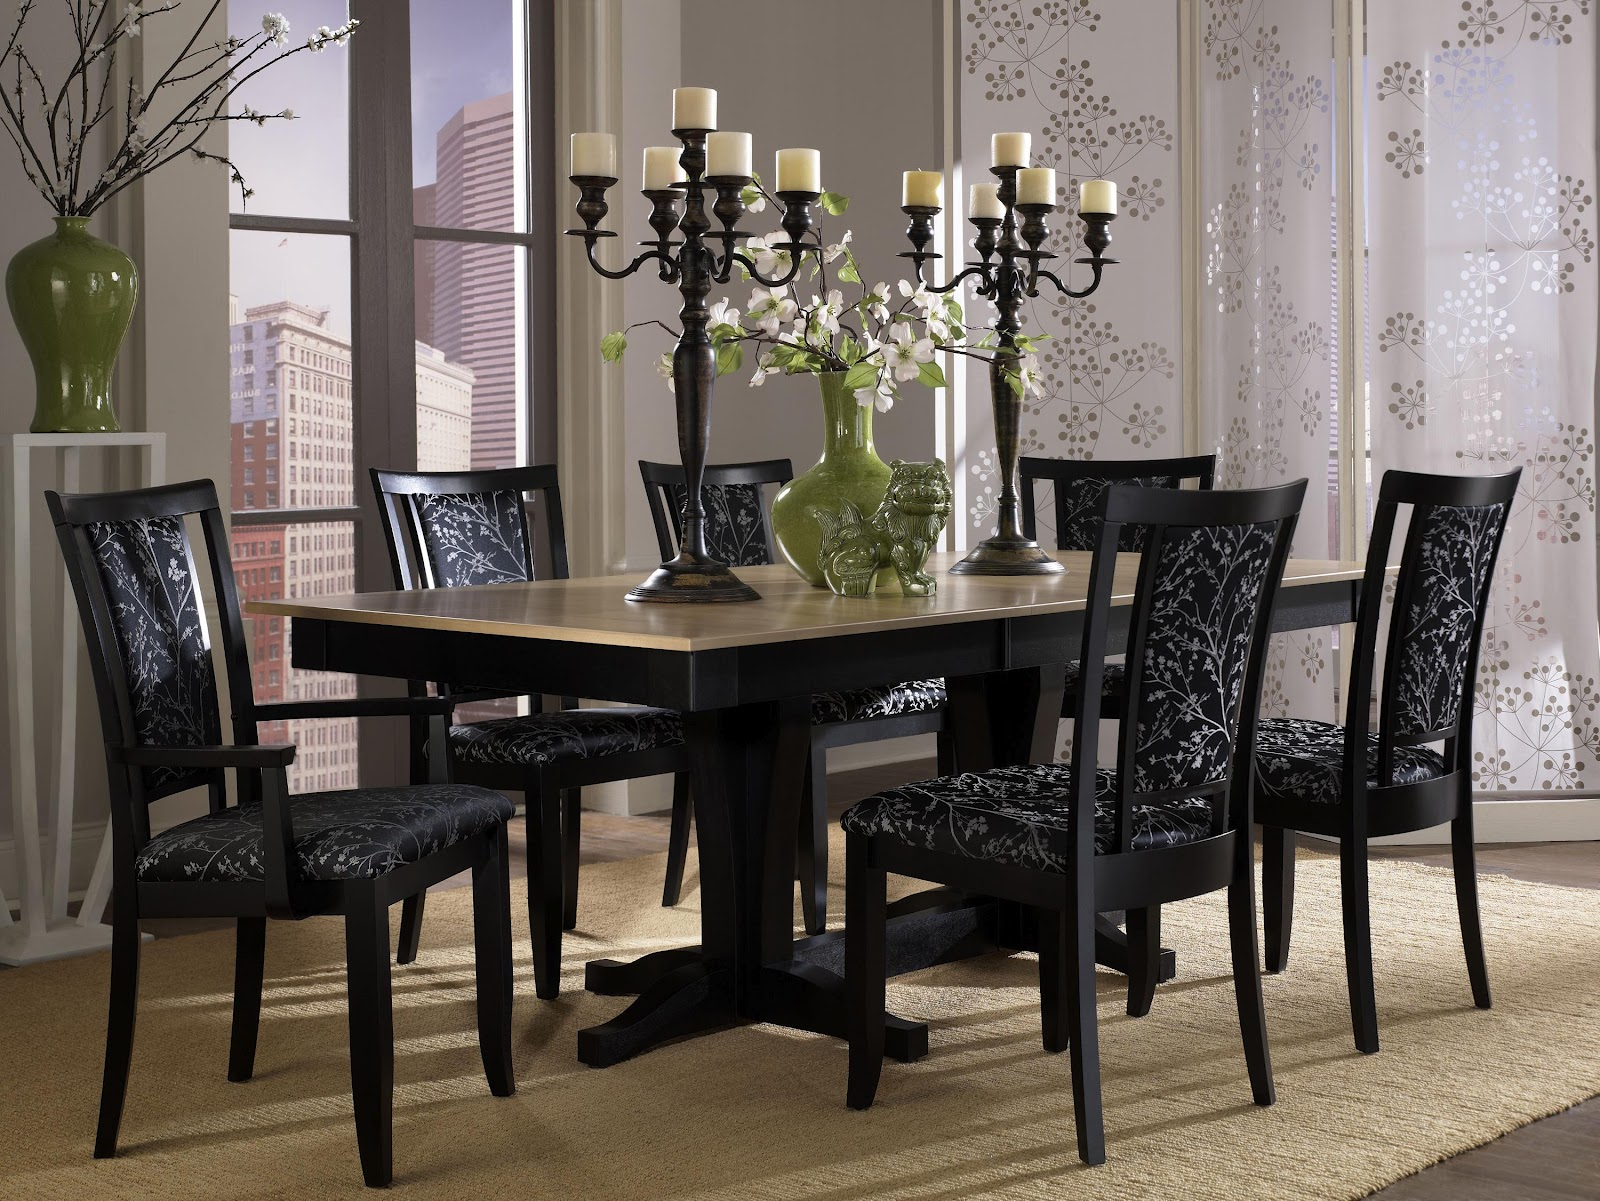 Canadel dining room sets new york dining room unique for Unique dining room designs